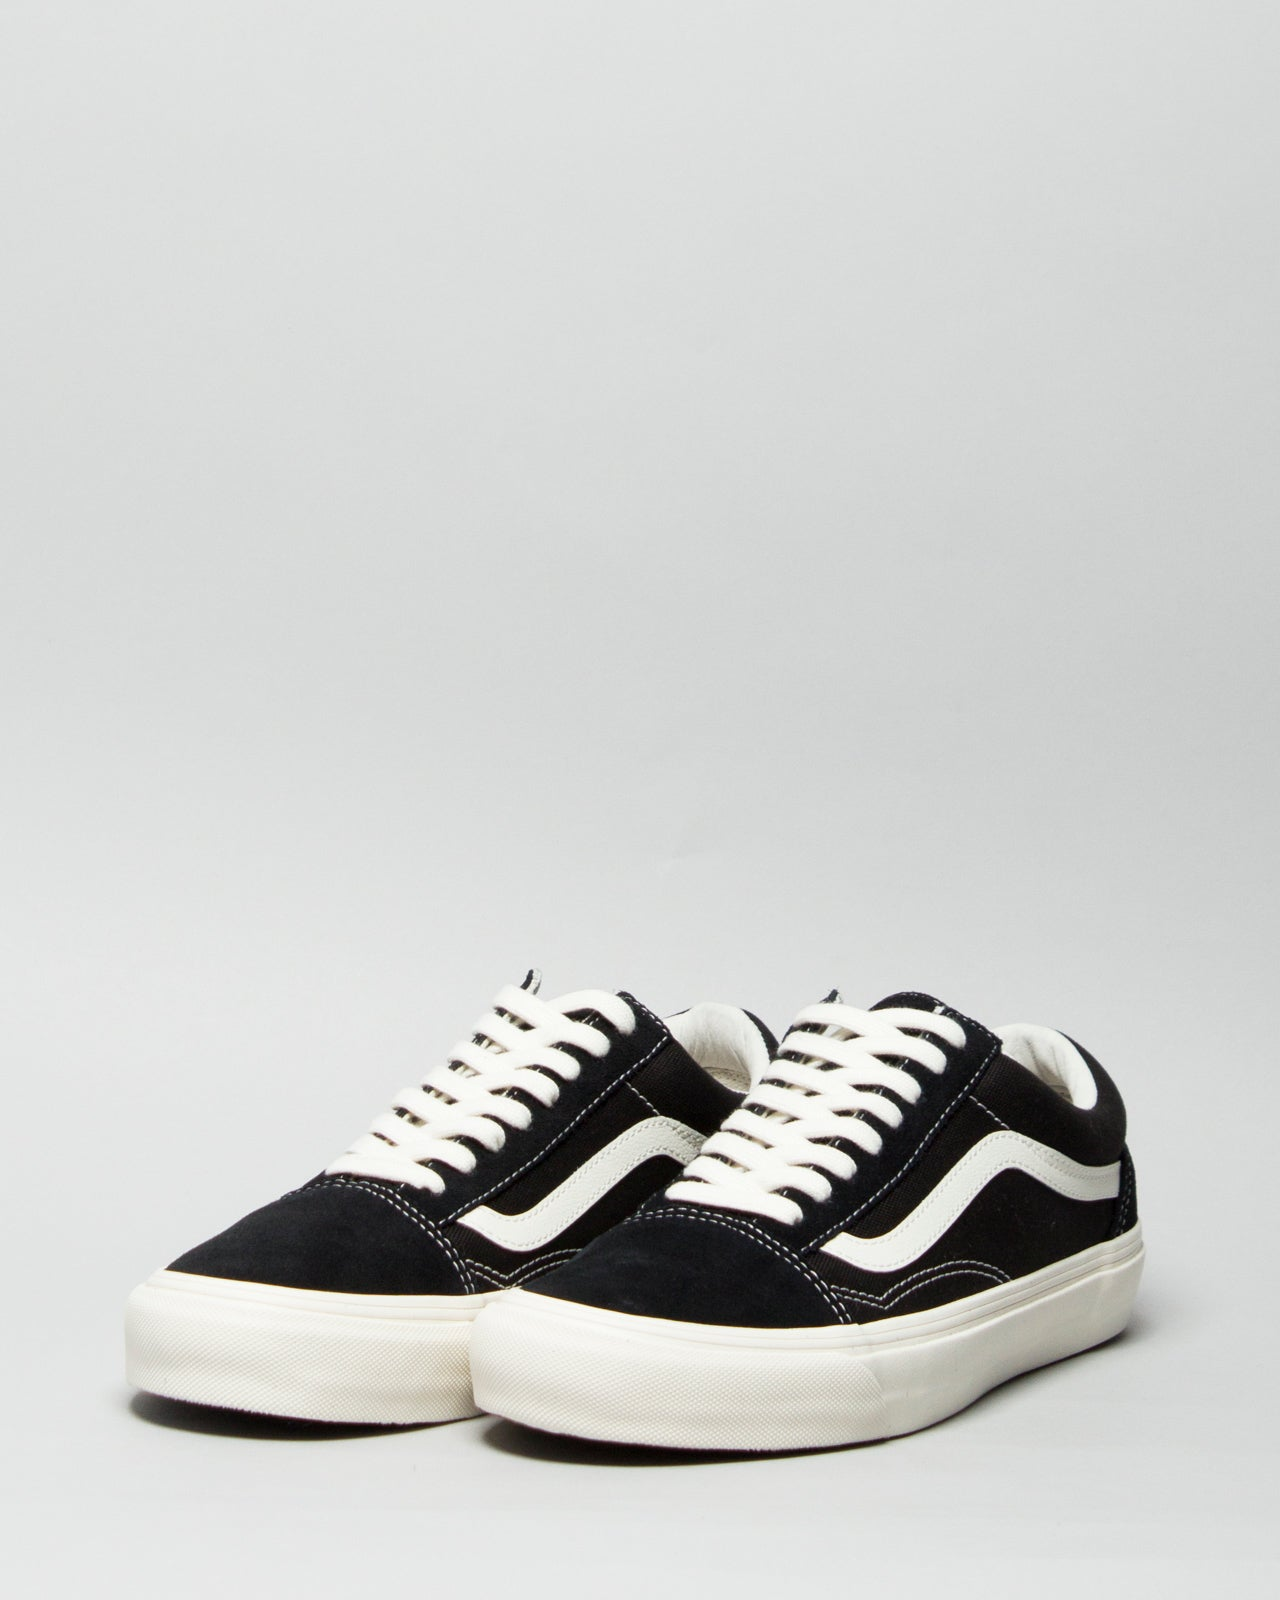 1c1e2f315c03 OG Old Skool LX (Suede Canvas) Black Marshmallow – LIKELIHOOD